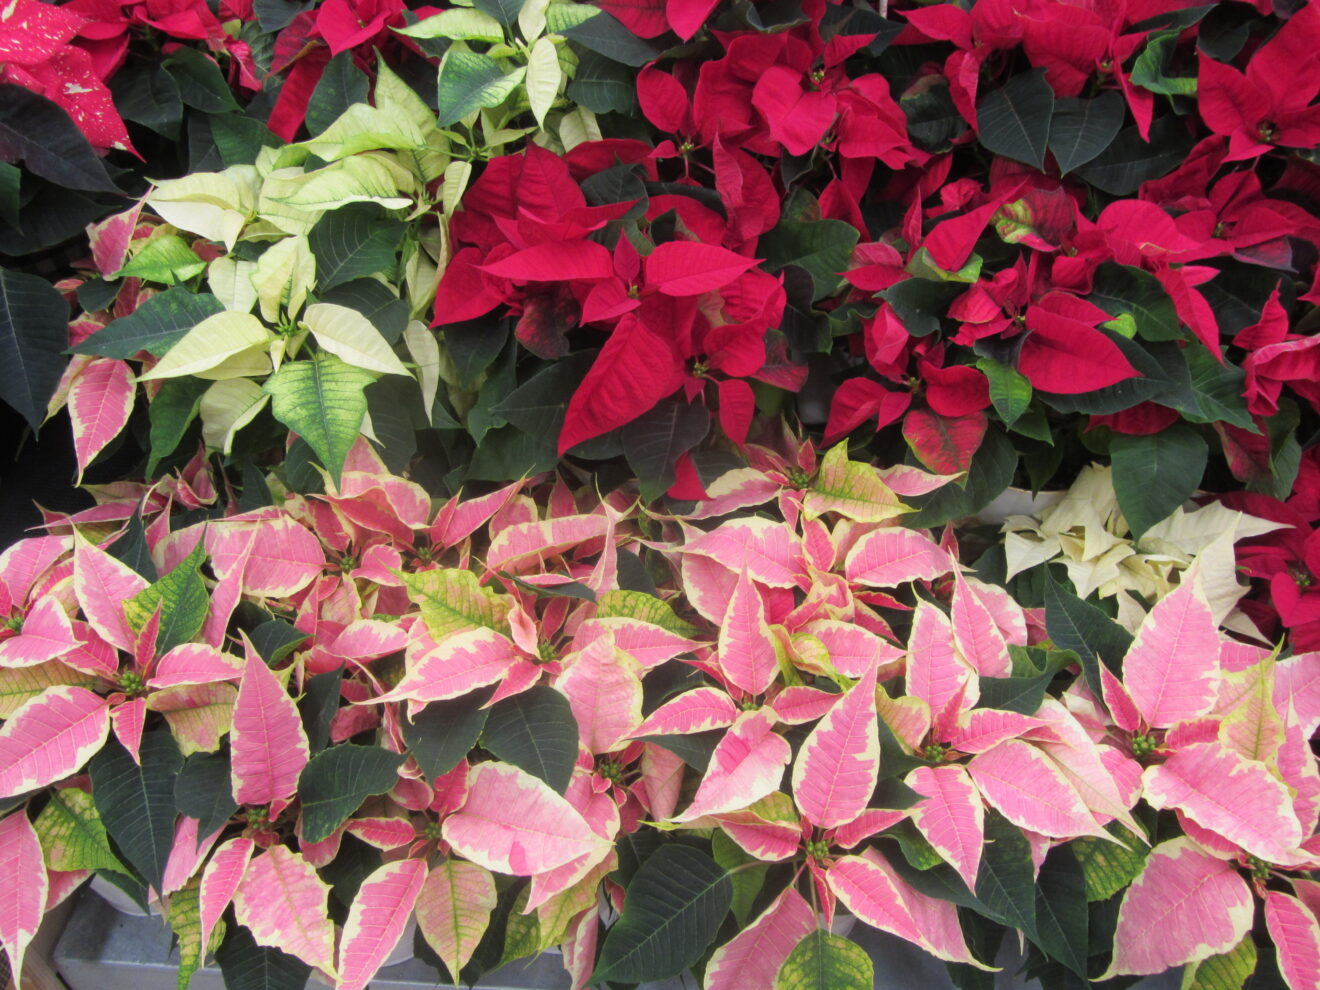 Poinsettias brighten every home - and they are not poisonous